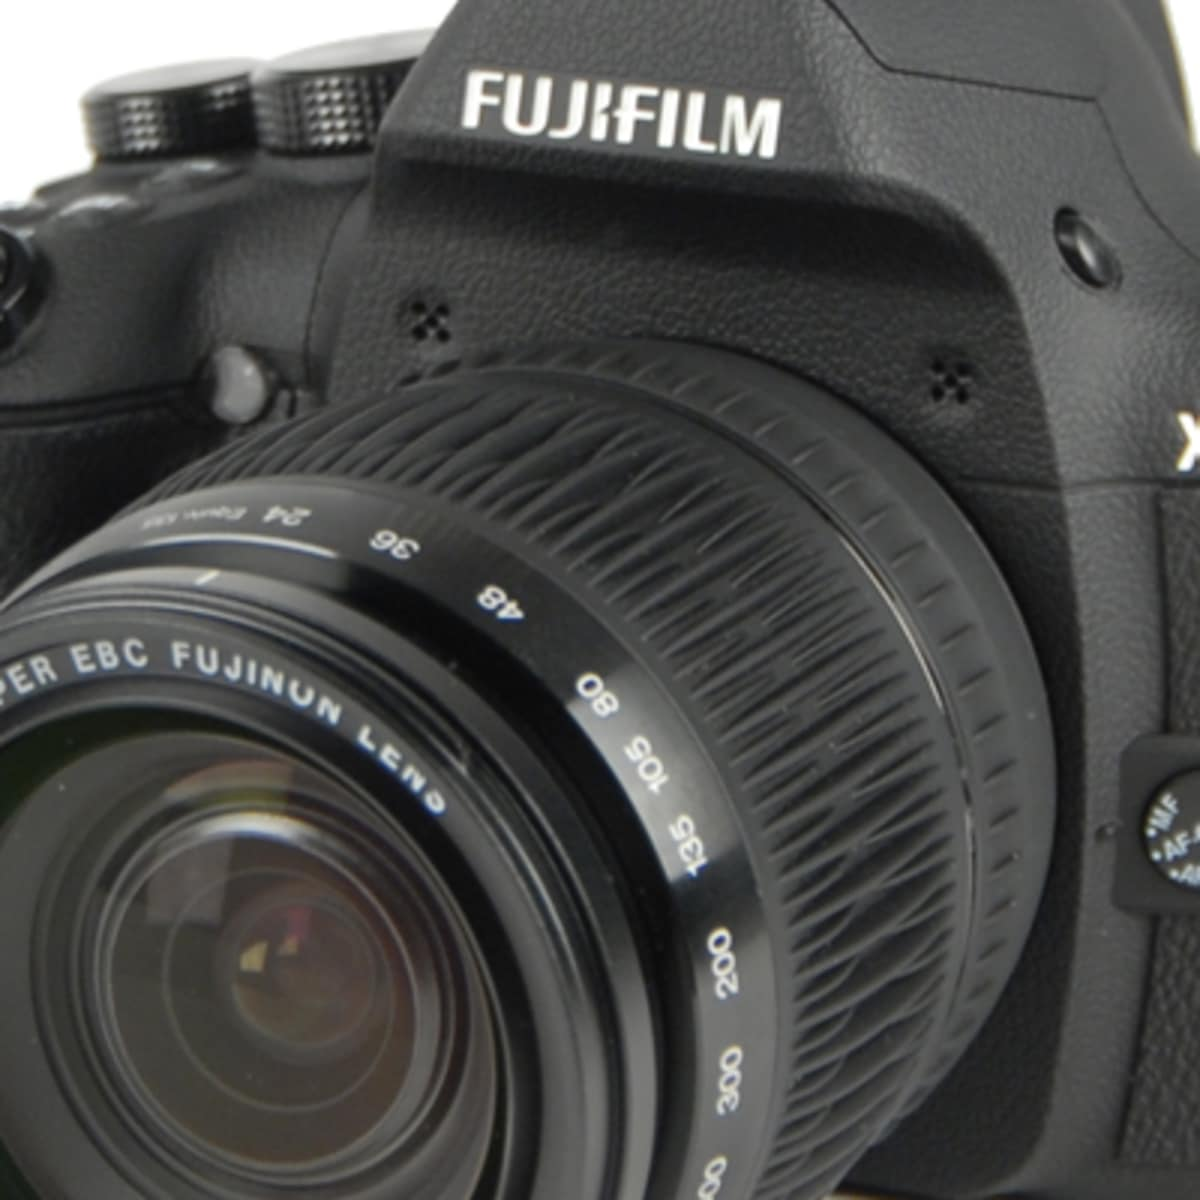 Fujifilm X-S1 Review - Reviewed Cameras